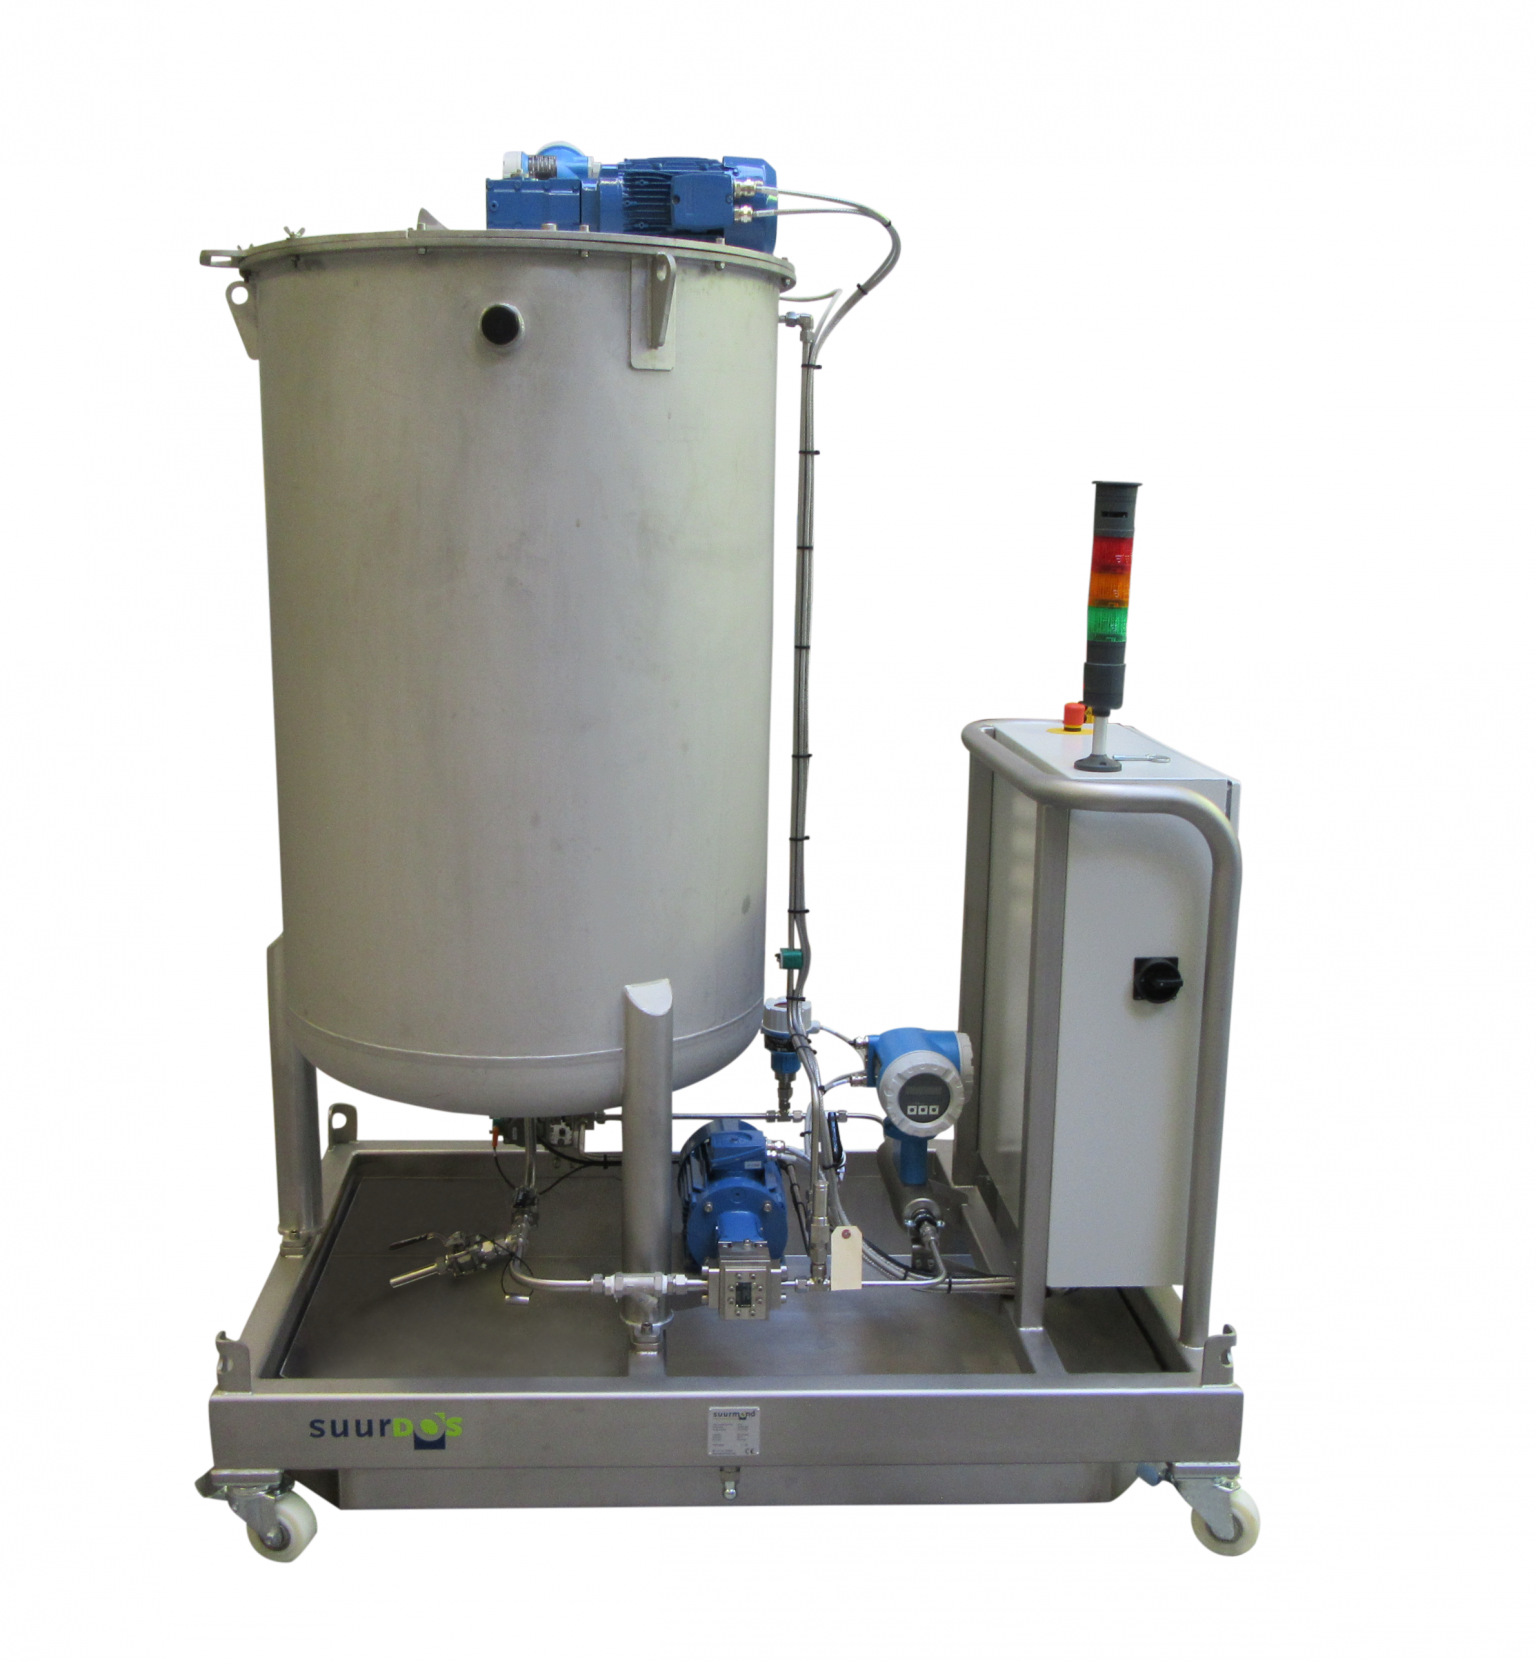 The dosing solution was built as a mobile unit that incorporates pump, motor, buffer tank and controller